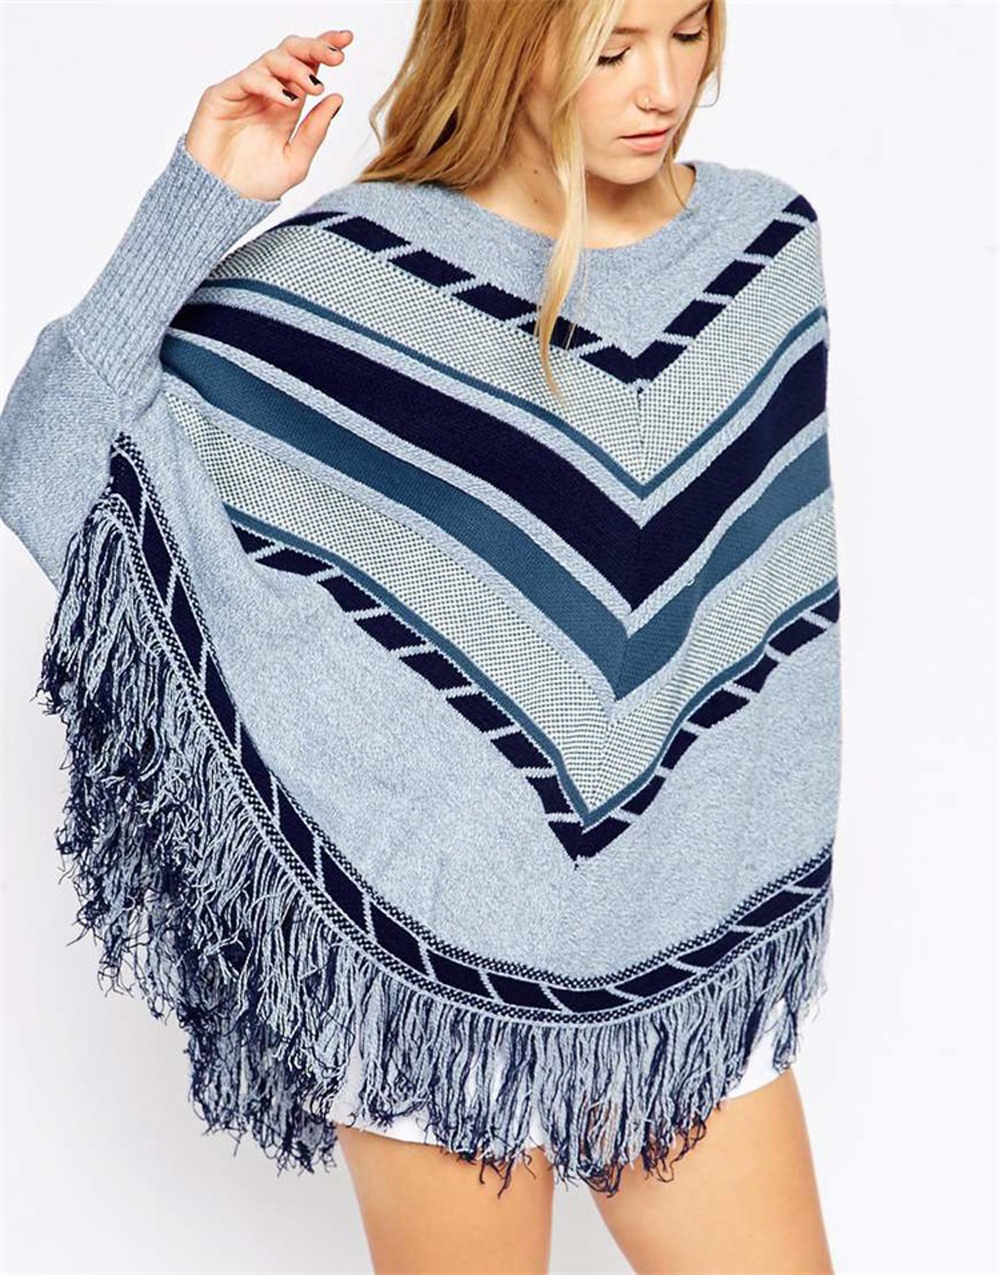 Maternity Tassel Cape Shawl Sweater Poncho Ladies' Cape with Fringed Hem Striped Patchwork Pullover Fashionable Retro Style drop shoulder knot hem striped jumper